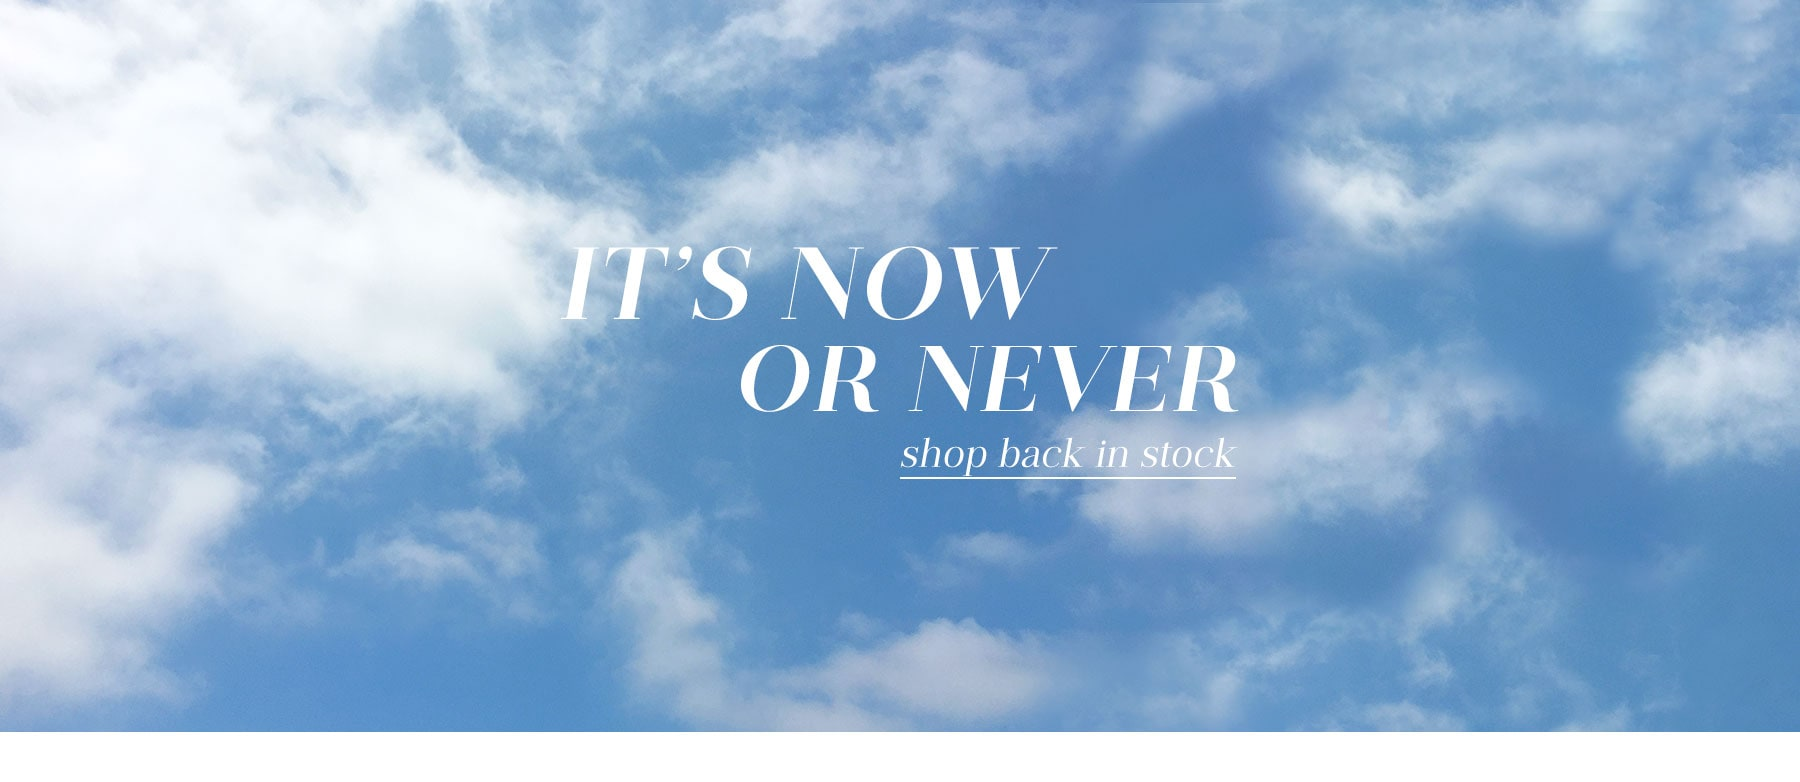 It's Now or Never. Shop back in stock.